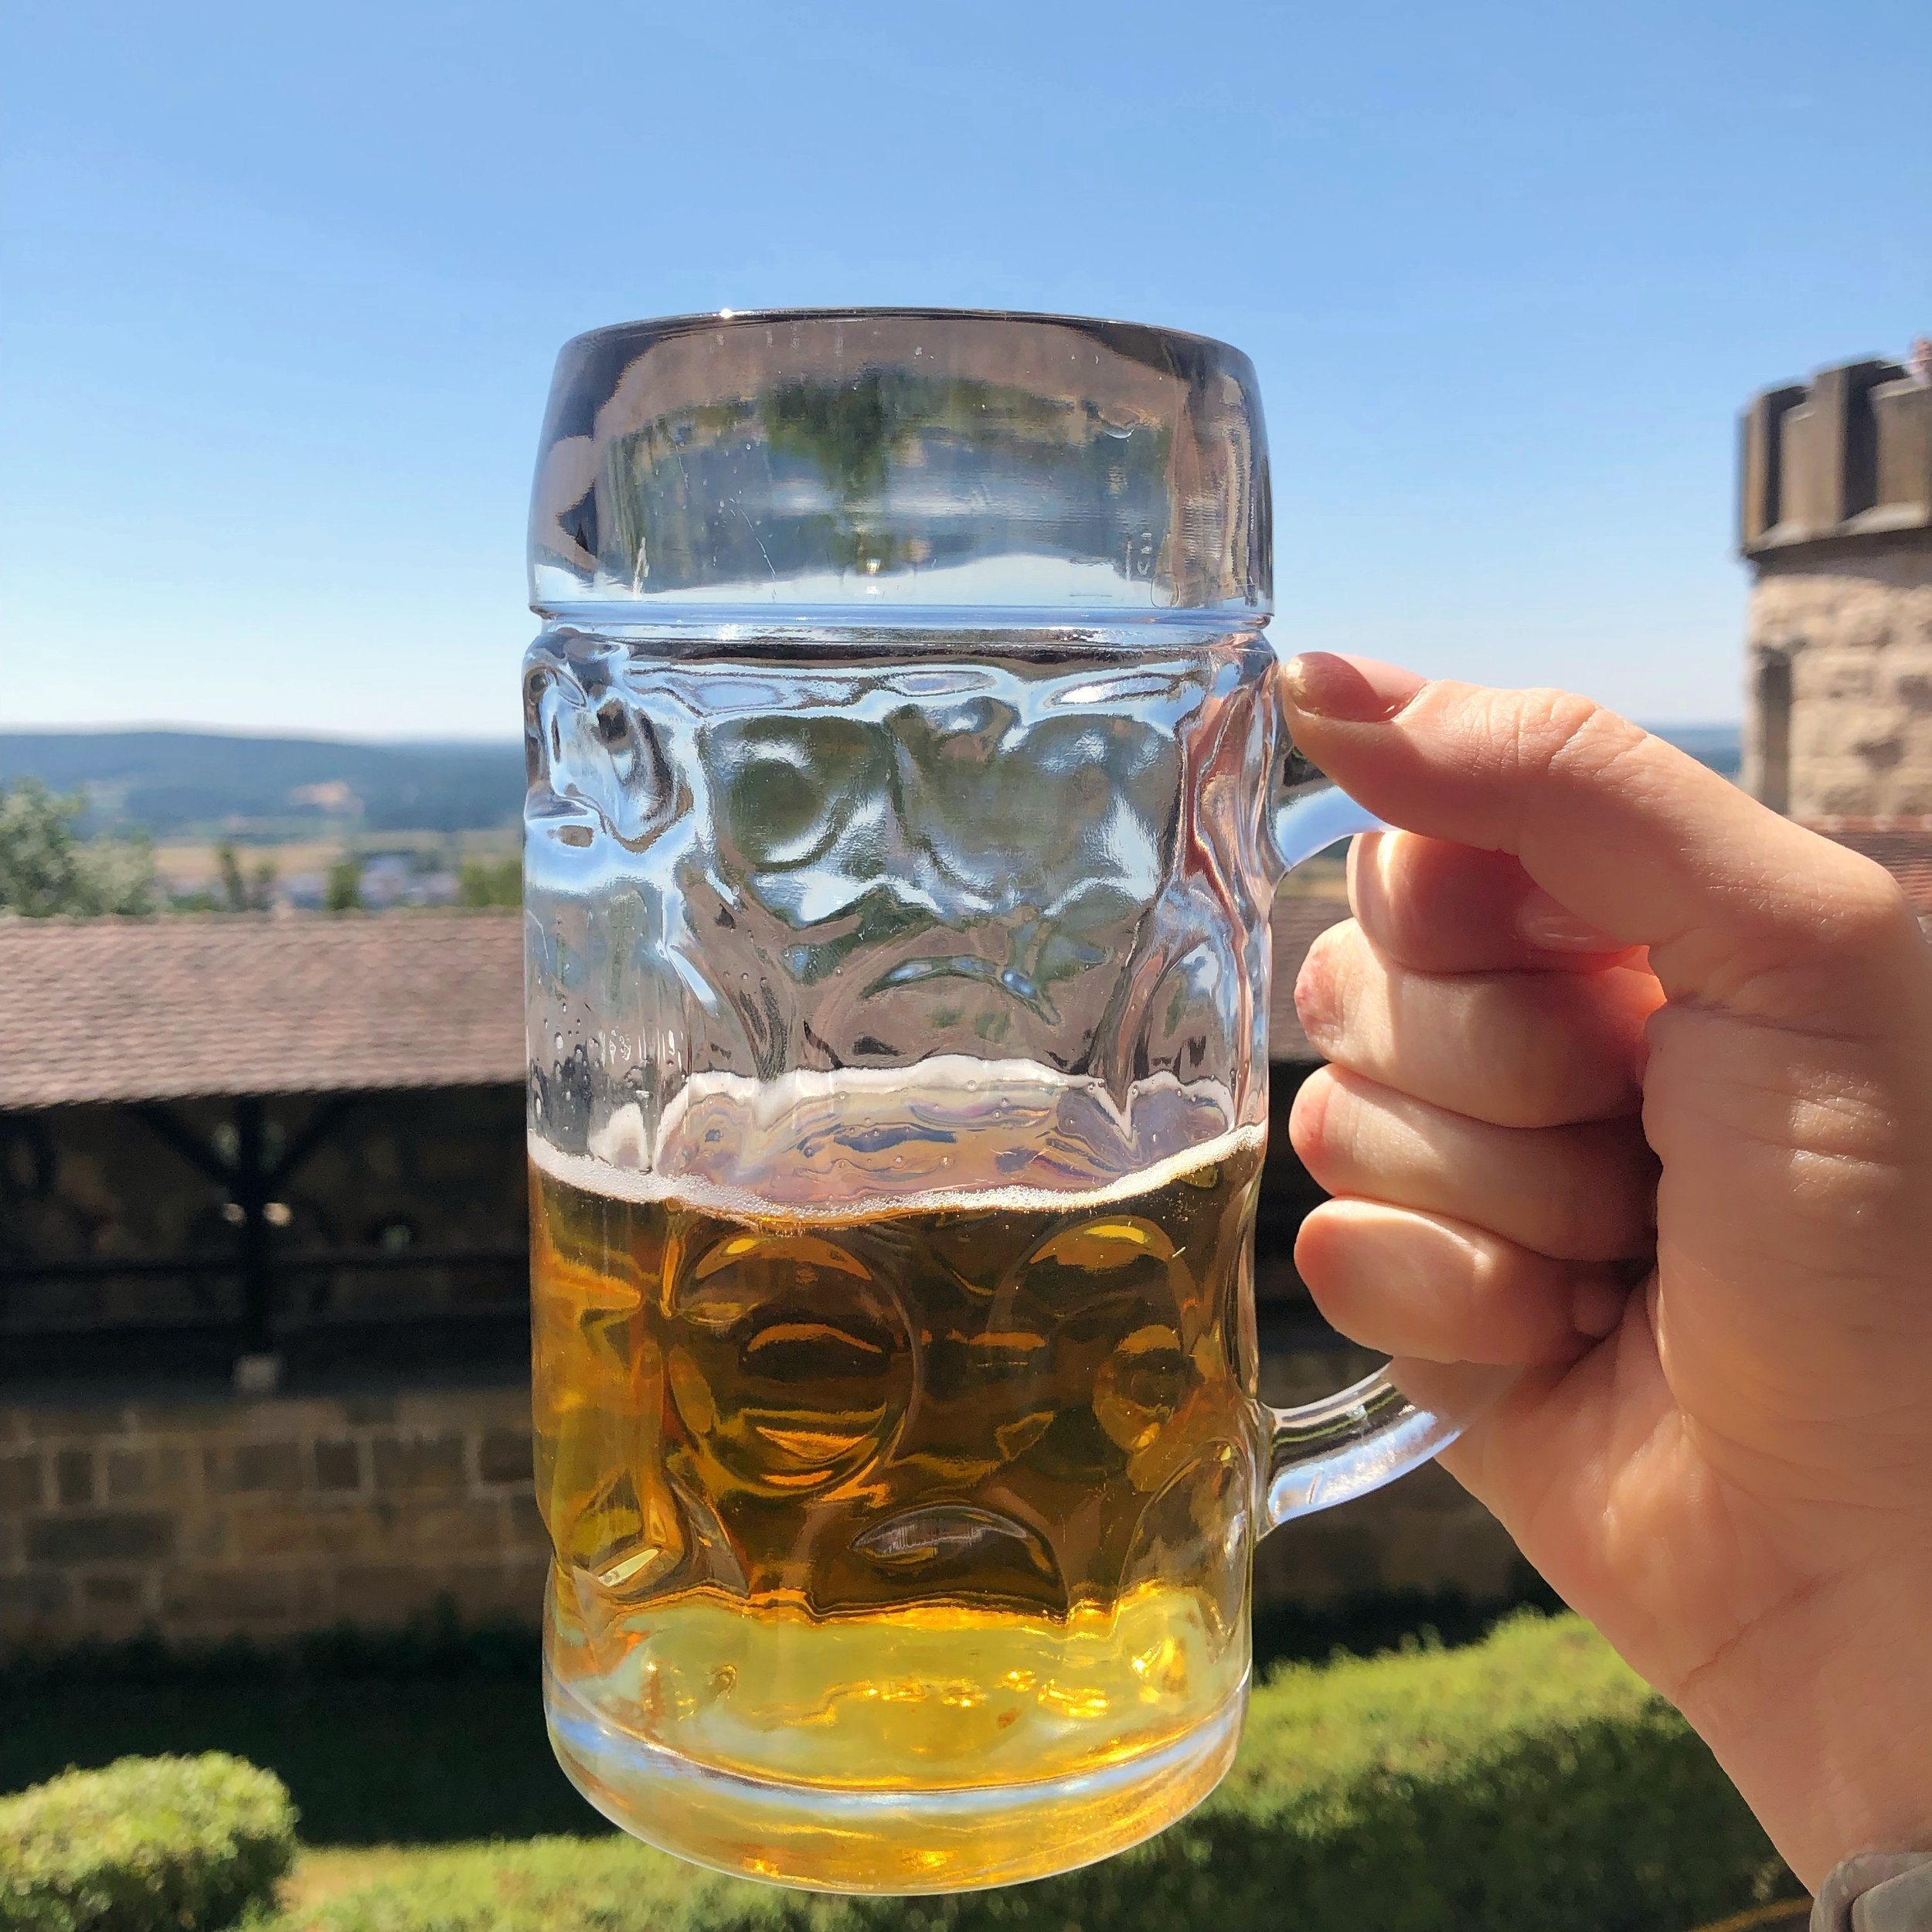 A helles with a side of castle.